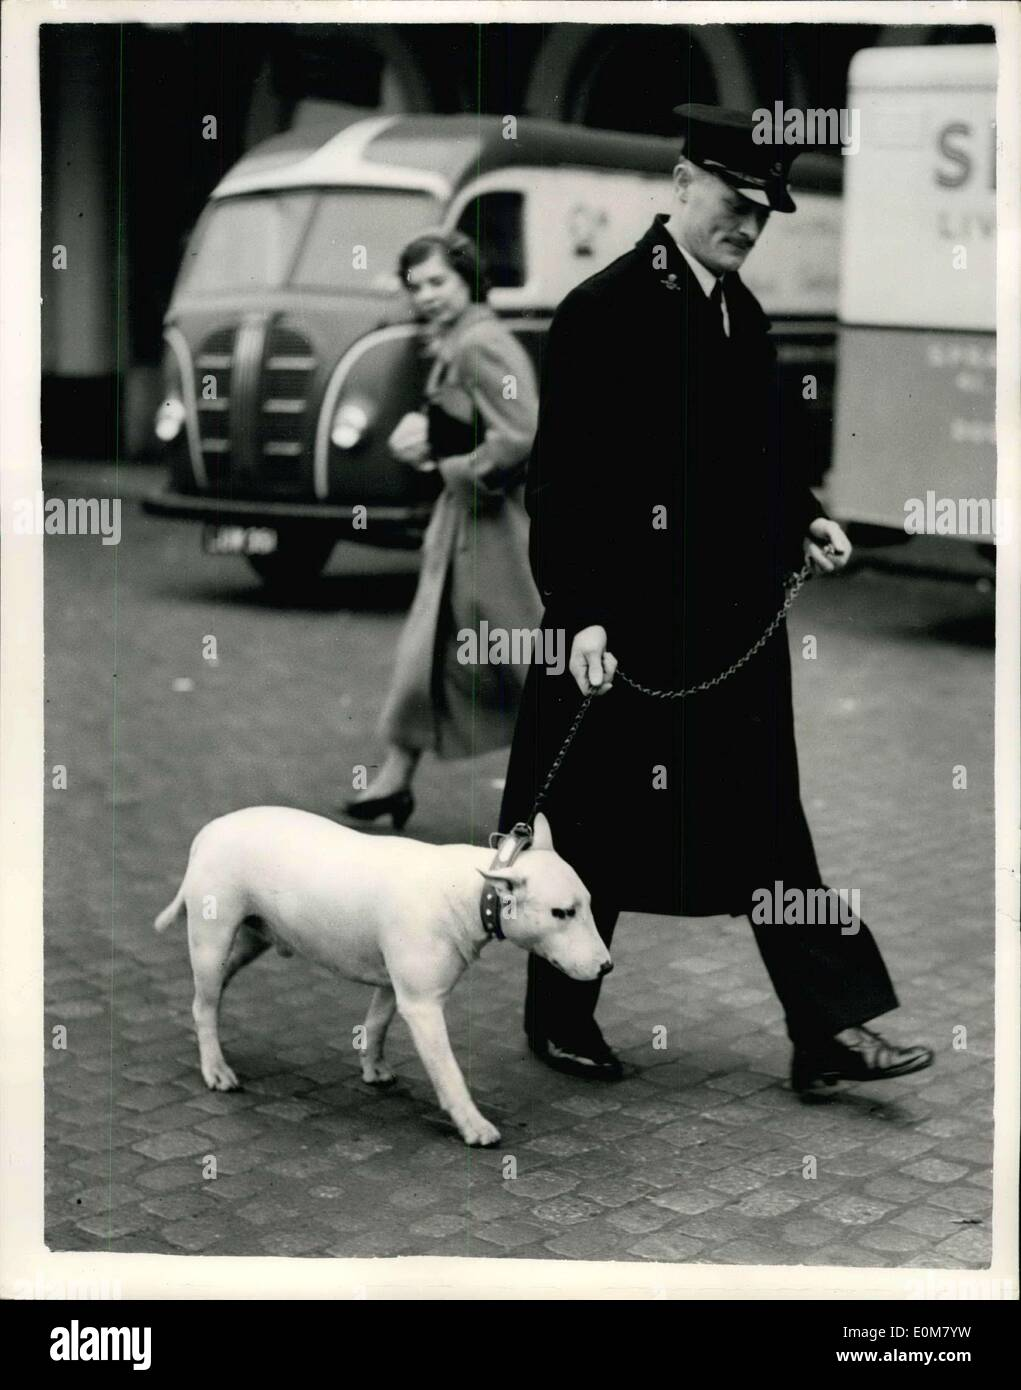 Nov. 24, 1953 - Dog Goes by Air to the Lebanon, Flies to his R.A.F. Master. ?Rolfe? a Bull Terrier, was to be seen in London this morning prior to leaving London Airport for the Lebanon. The flight has been arranged by the R.S.P.C.A. and the dog is going out to his master Flight Sgt. F. Hitchcock serving with the RAF at Base Aerienne, Rayak, Lebanon. Rolfe is 2 year old and was being cared for by Mrs. Hitchcock of Hythe, who asked the RSPCA to find a home for him otherwise o have him destroyed - Stock Image